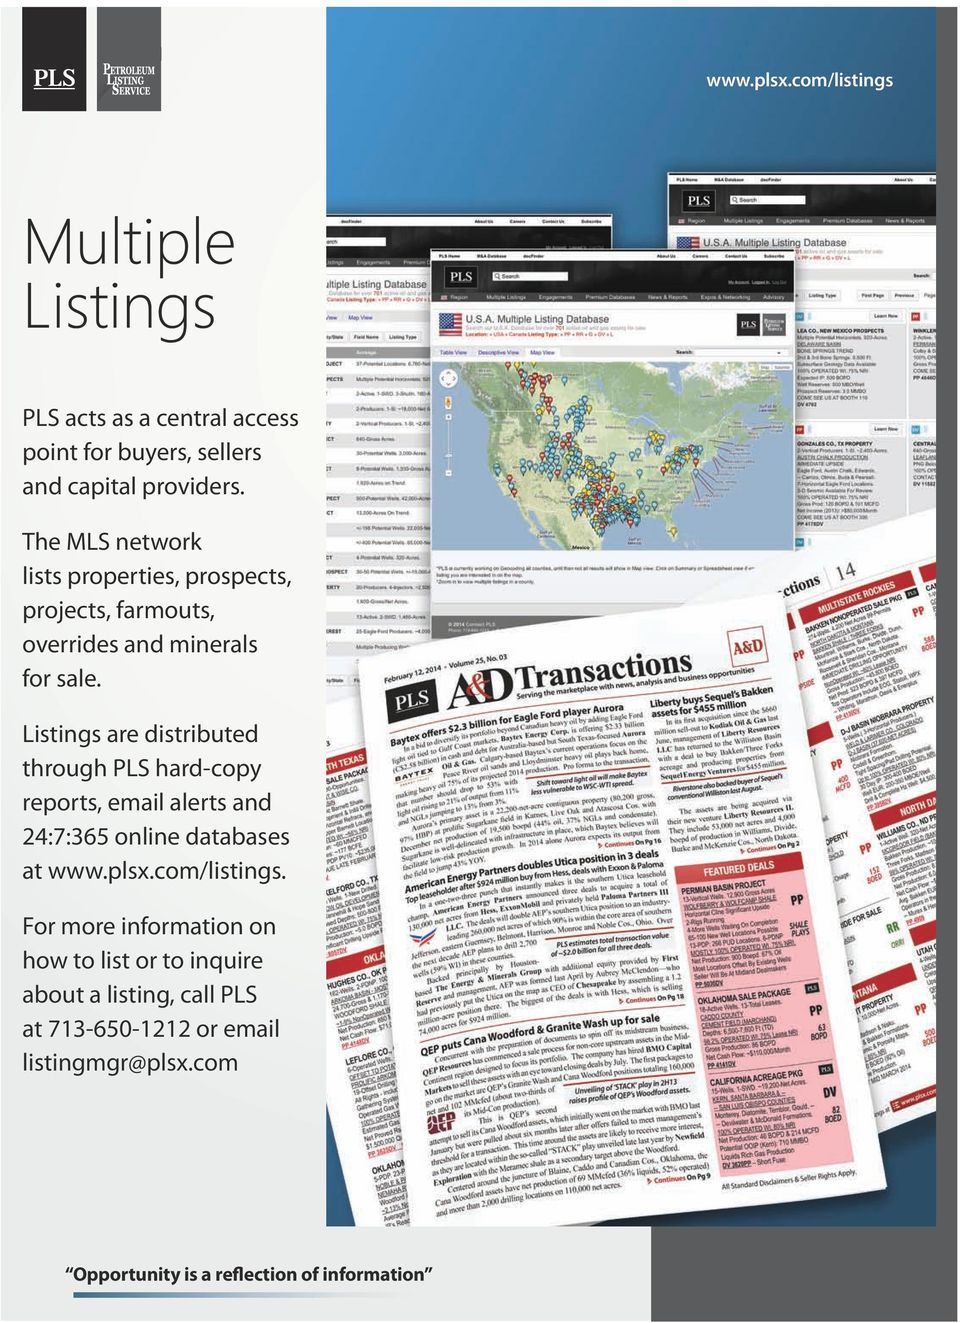 Listings are distributed through PLS hard-copy reports, email alerts and 24:7:365 online databases at www.plsx.com/listings.